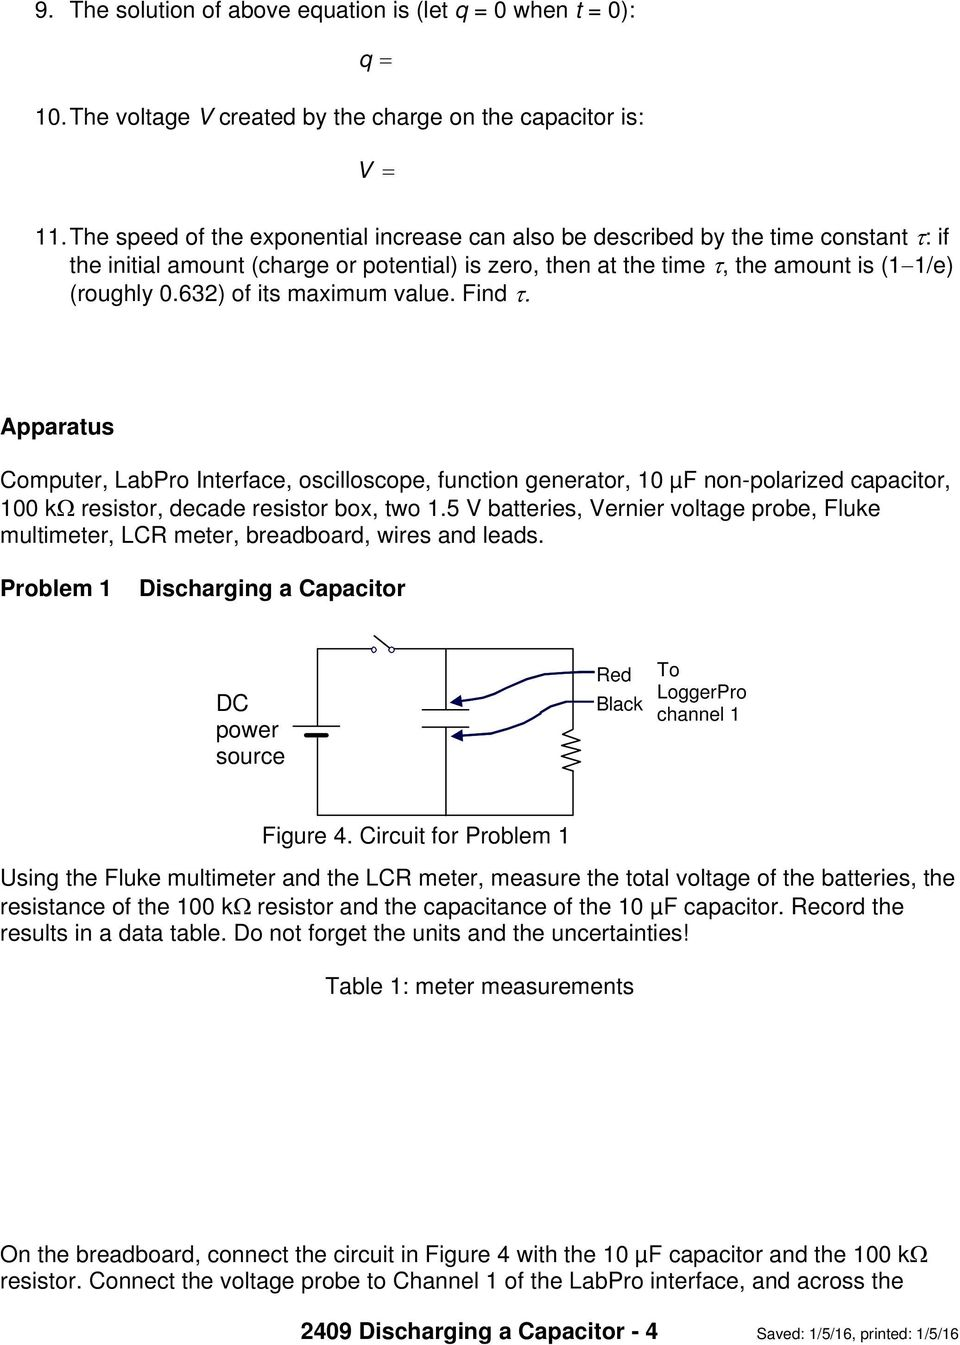 Discharging And Charging A Capacitor Pdf Capacitance Of 632 Its Maximum Value Find Apparatus Computer Labpro Interface